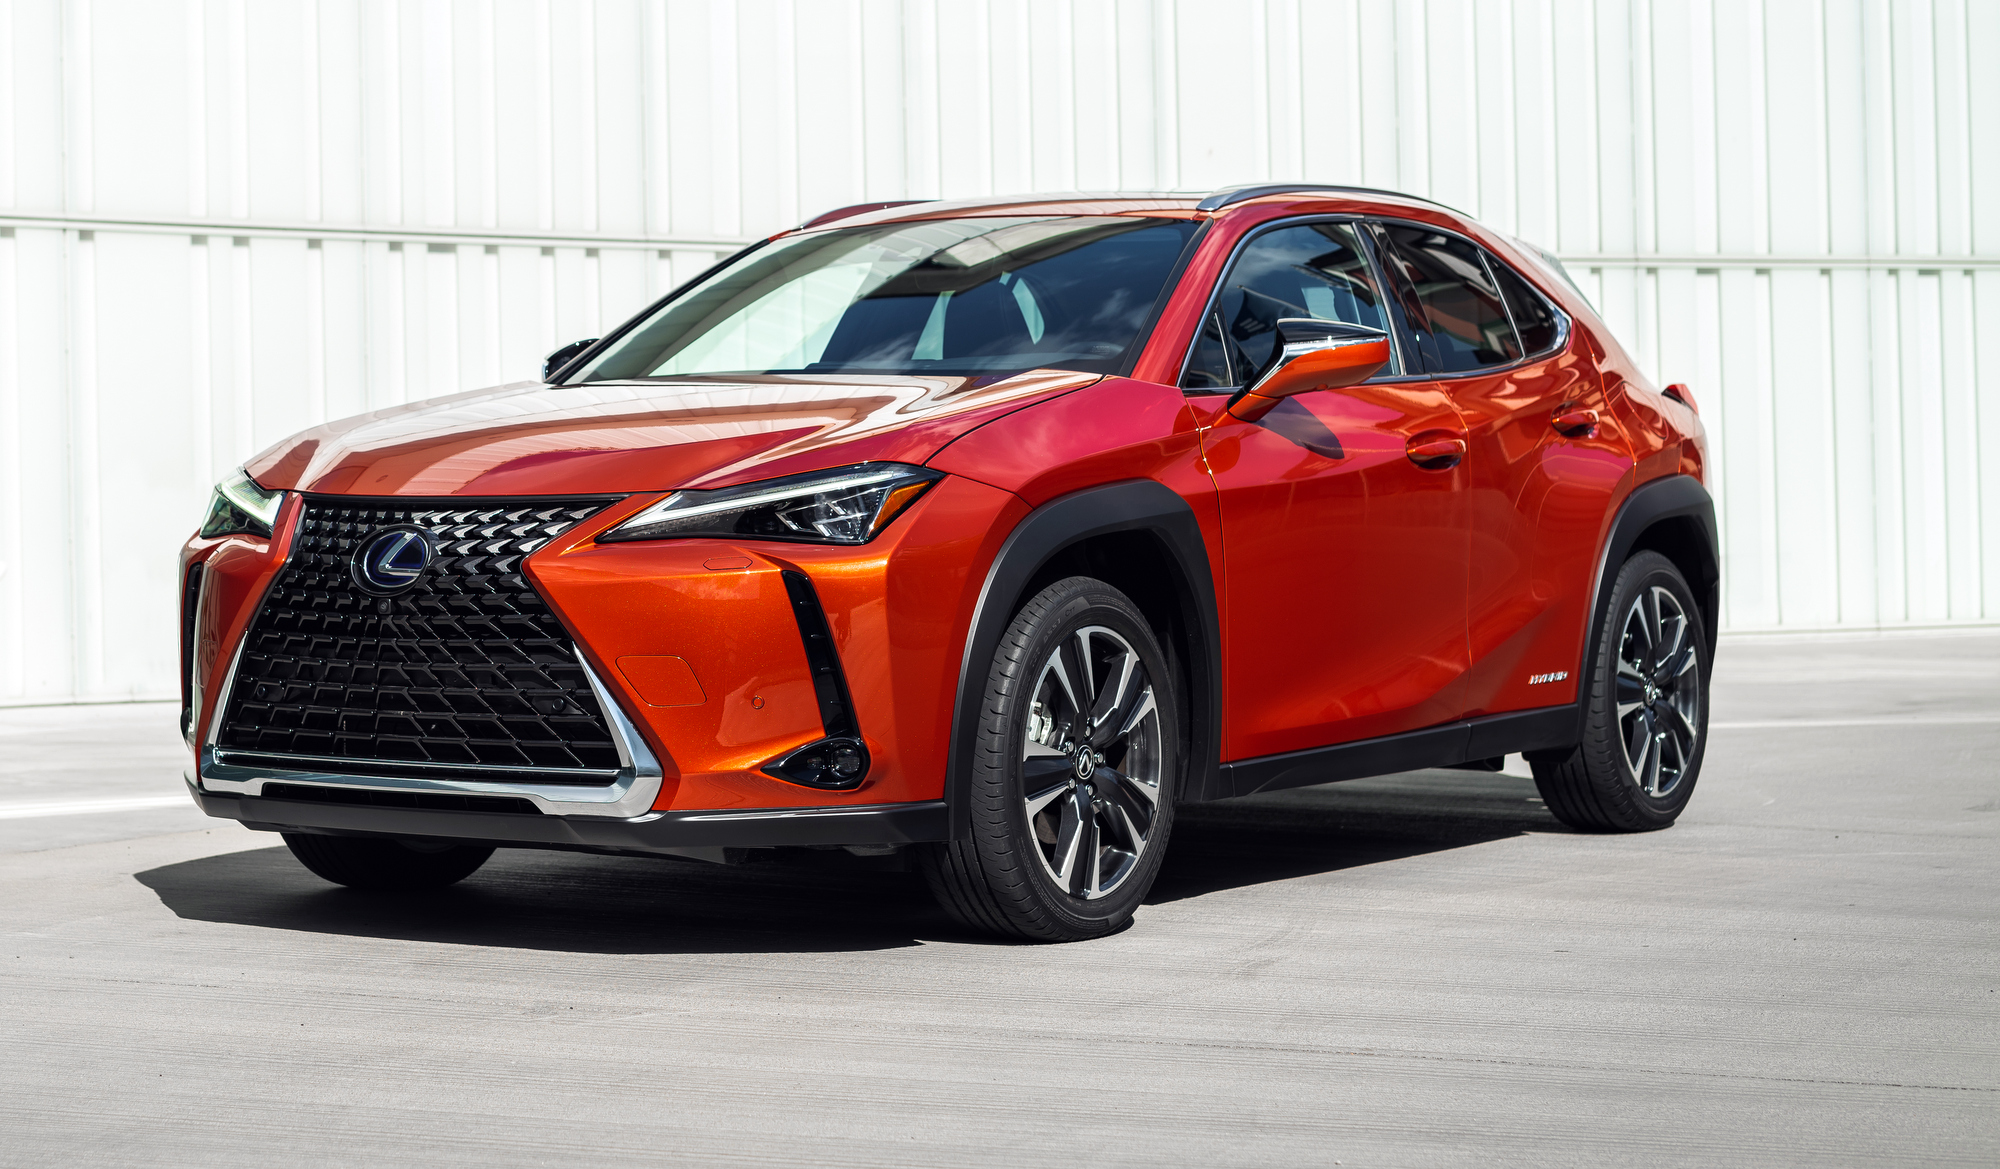 Fast Awd Cars >> Road Test: 2019 Lexus UX 250h | Clean Fleet Report